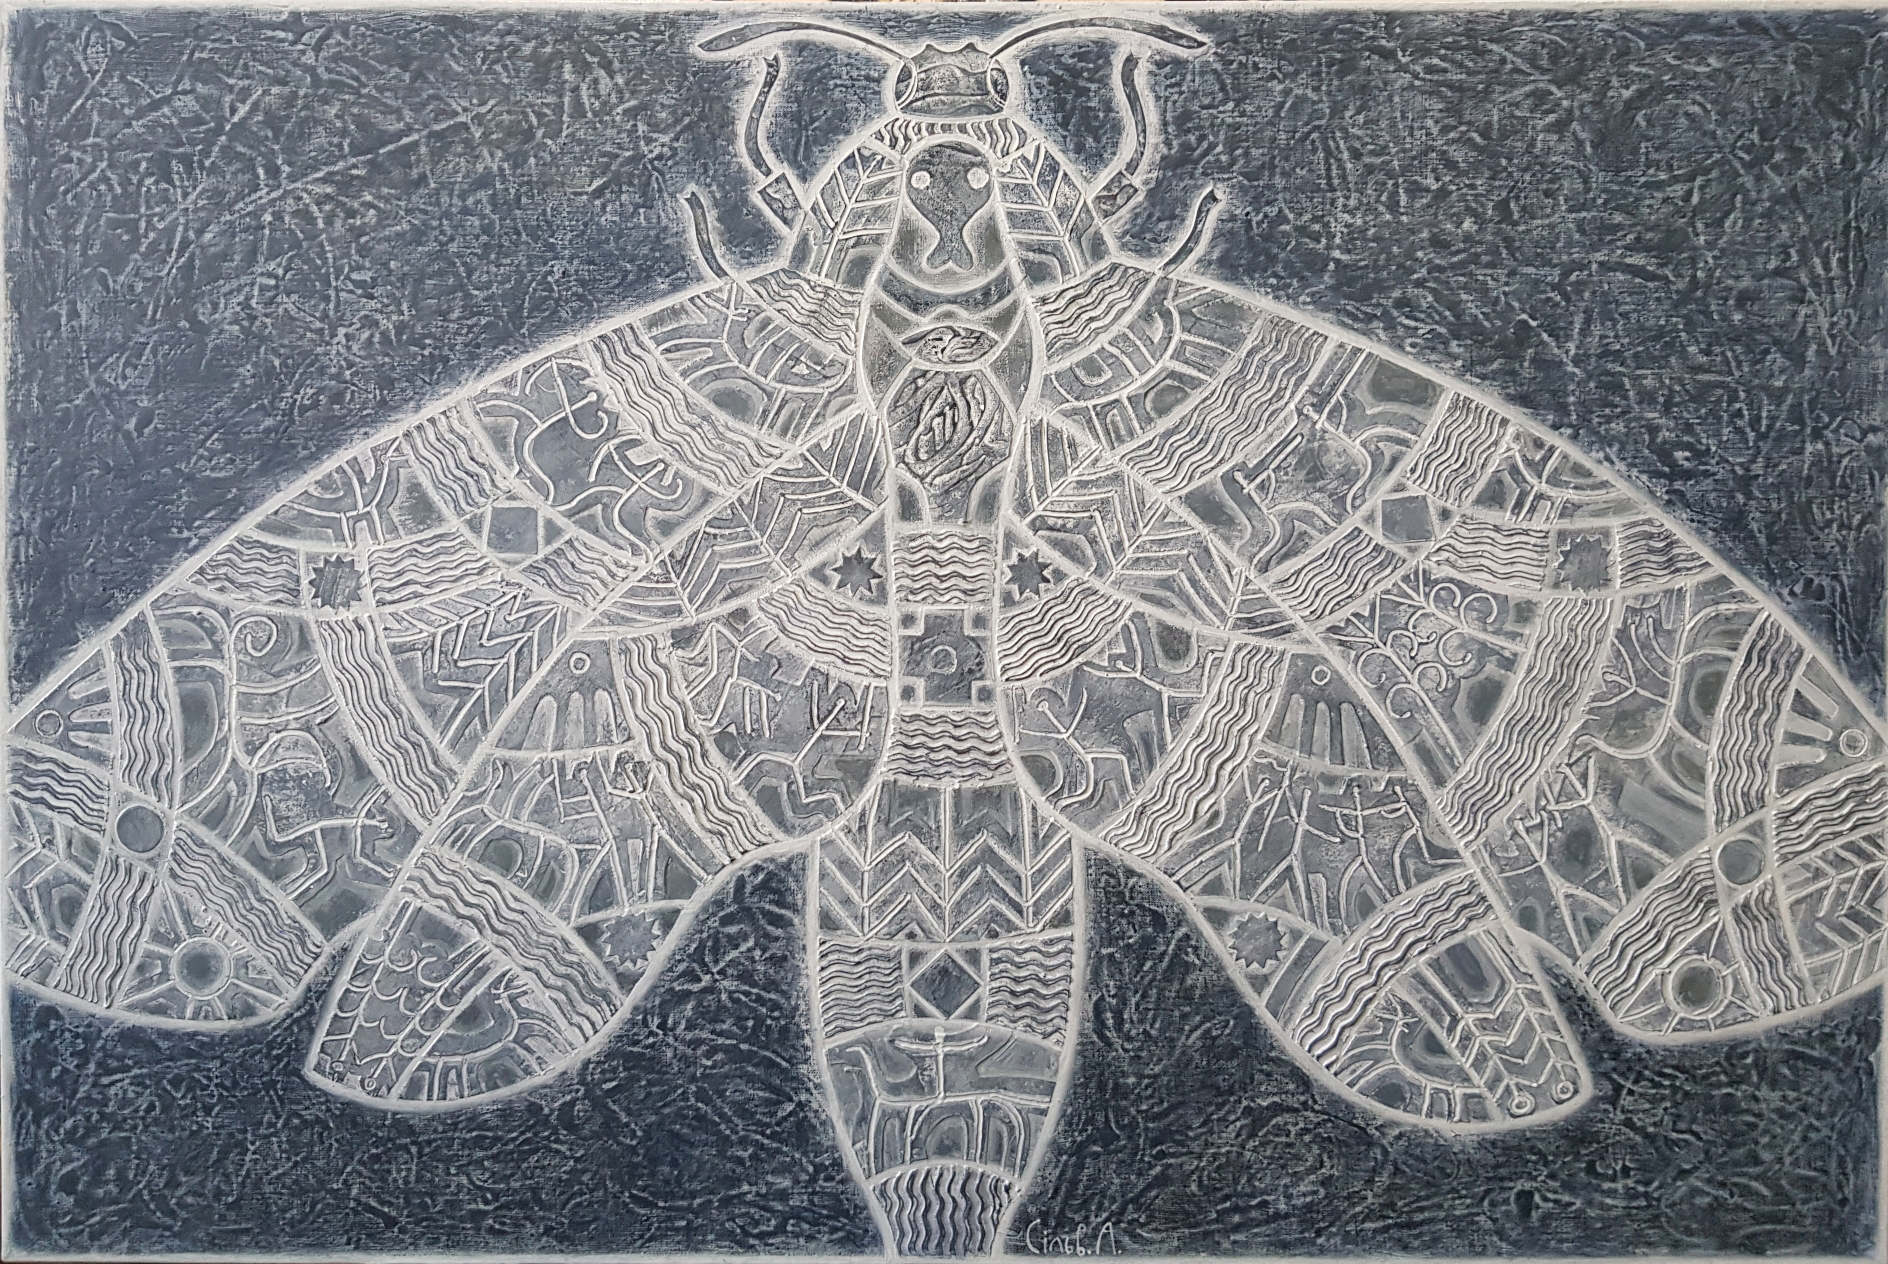 Entomology series. Butterfly